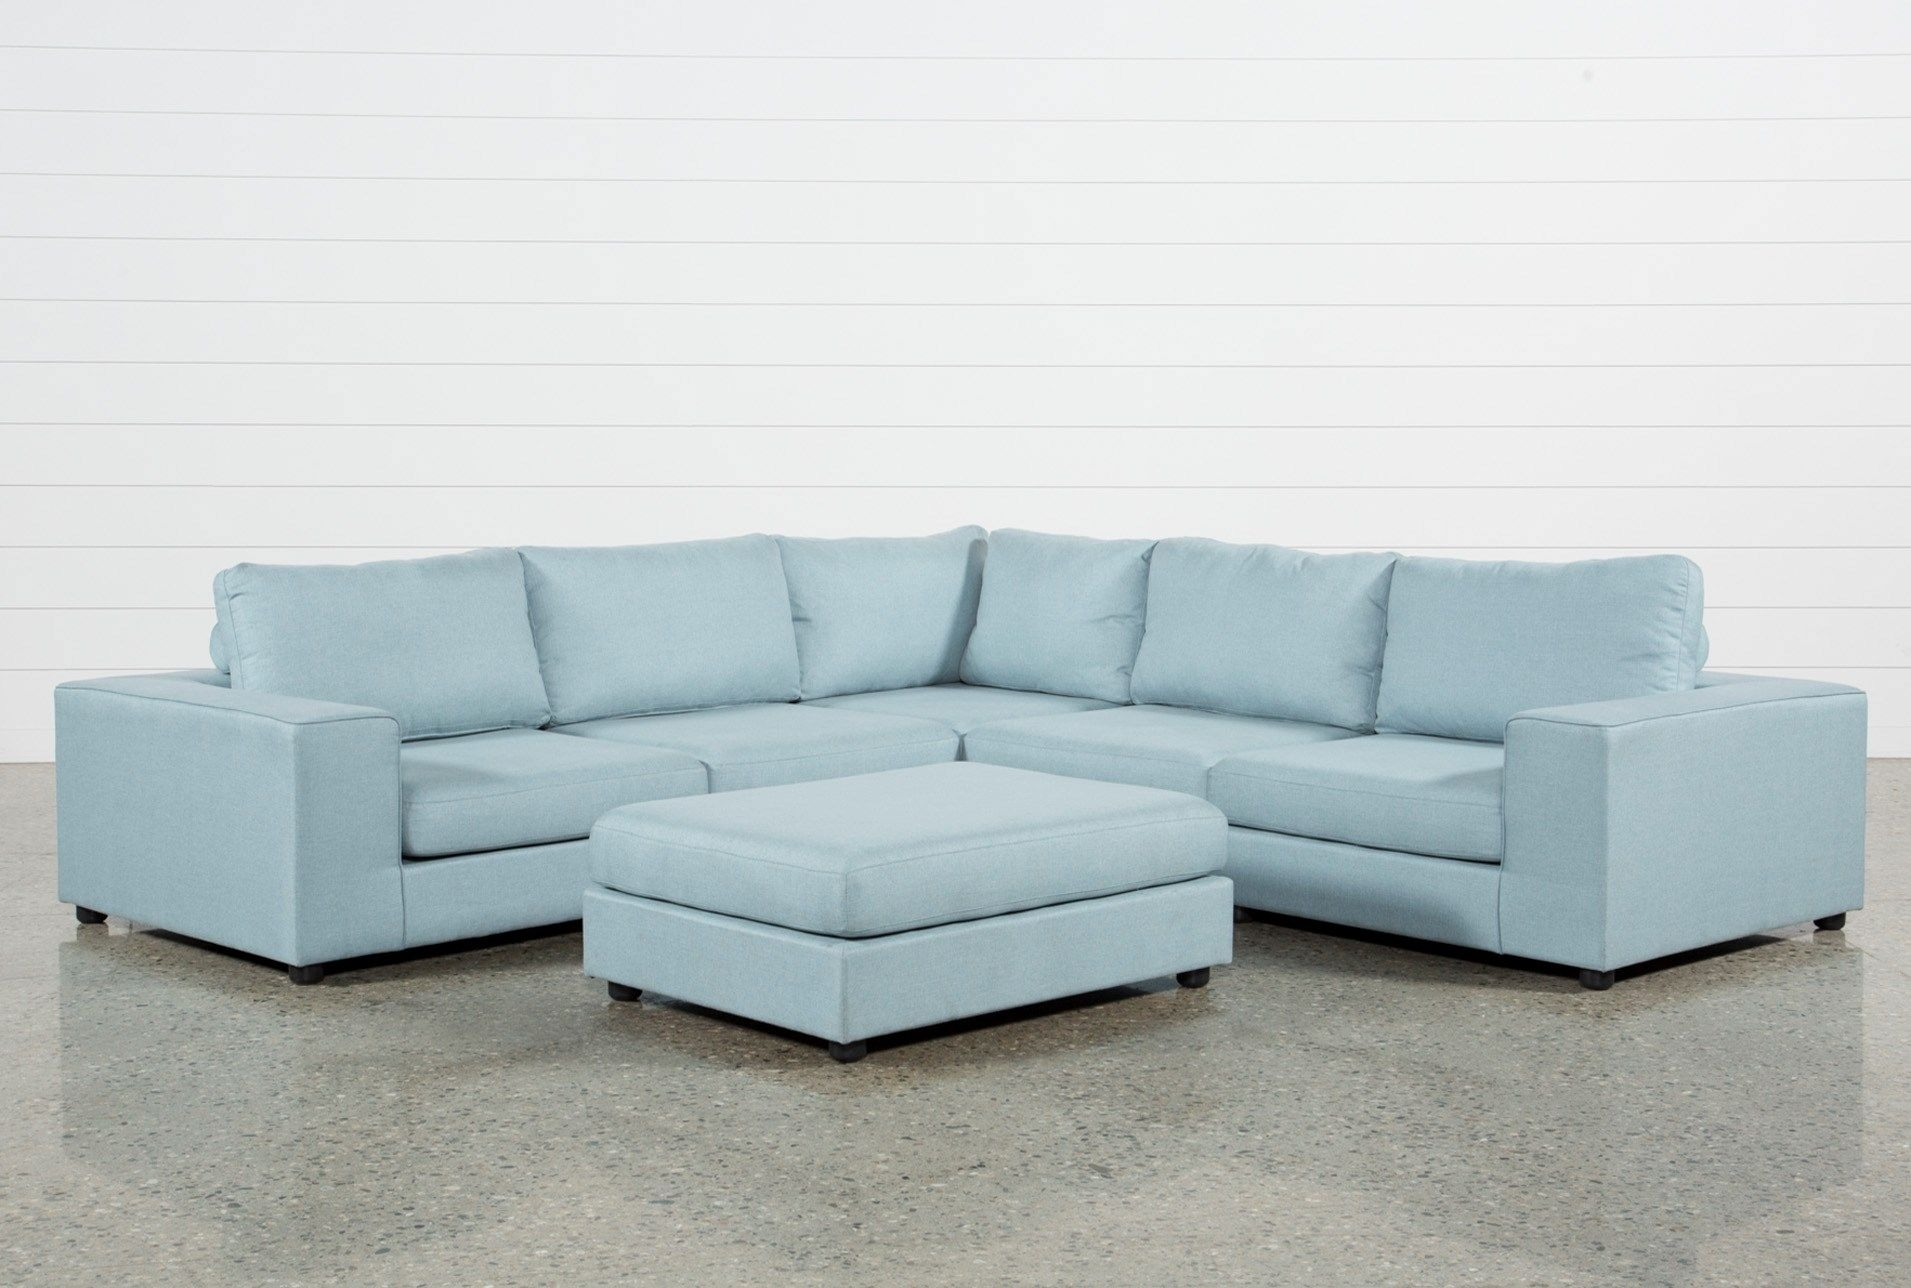 Josephine 2 Piece Sectional W/laf Sofa, Grey | Modular Design with regard to Sierra Foam Ii 3 Piece Sectionals (Image 19 of 30)